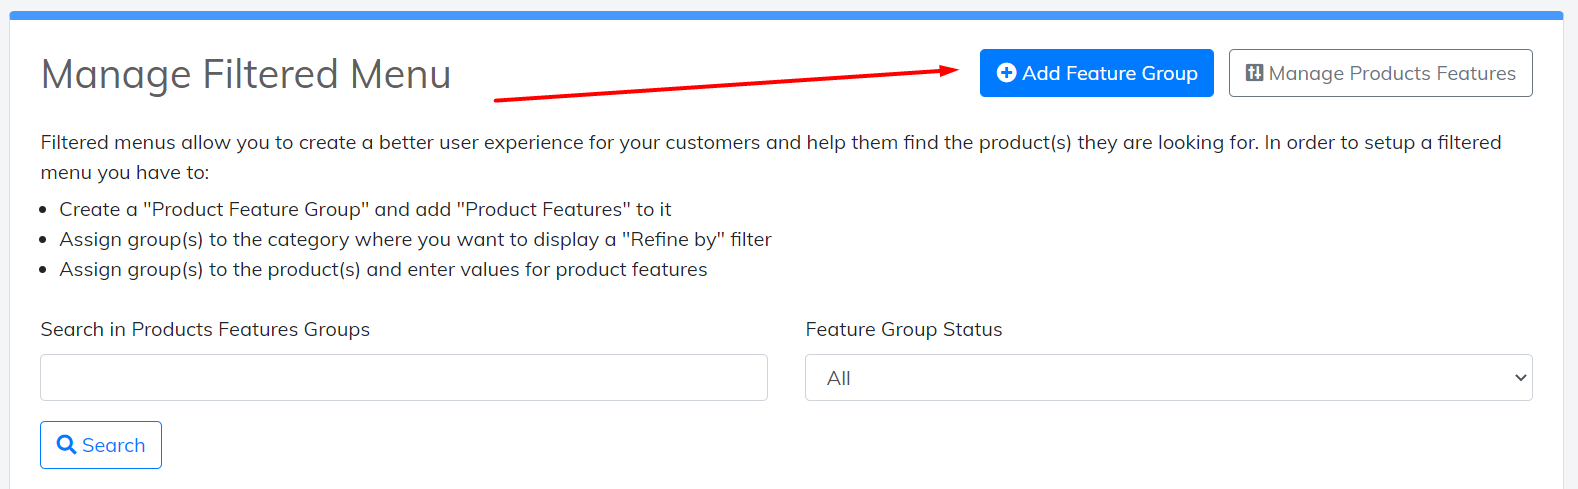 add feature group